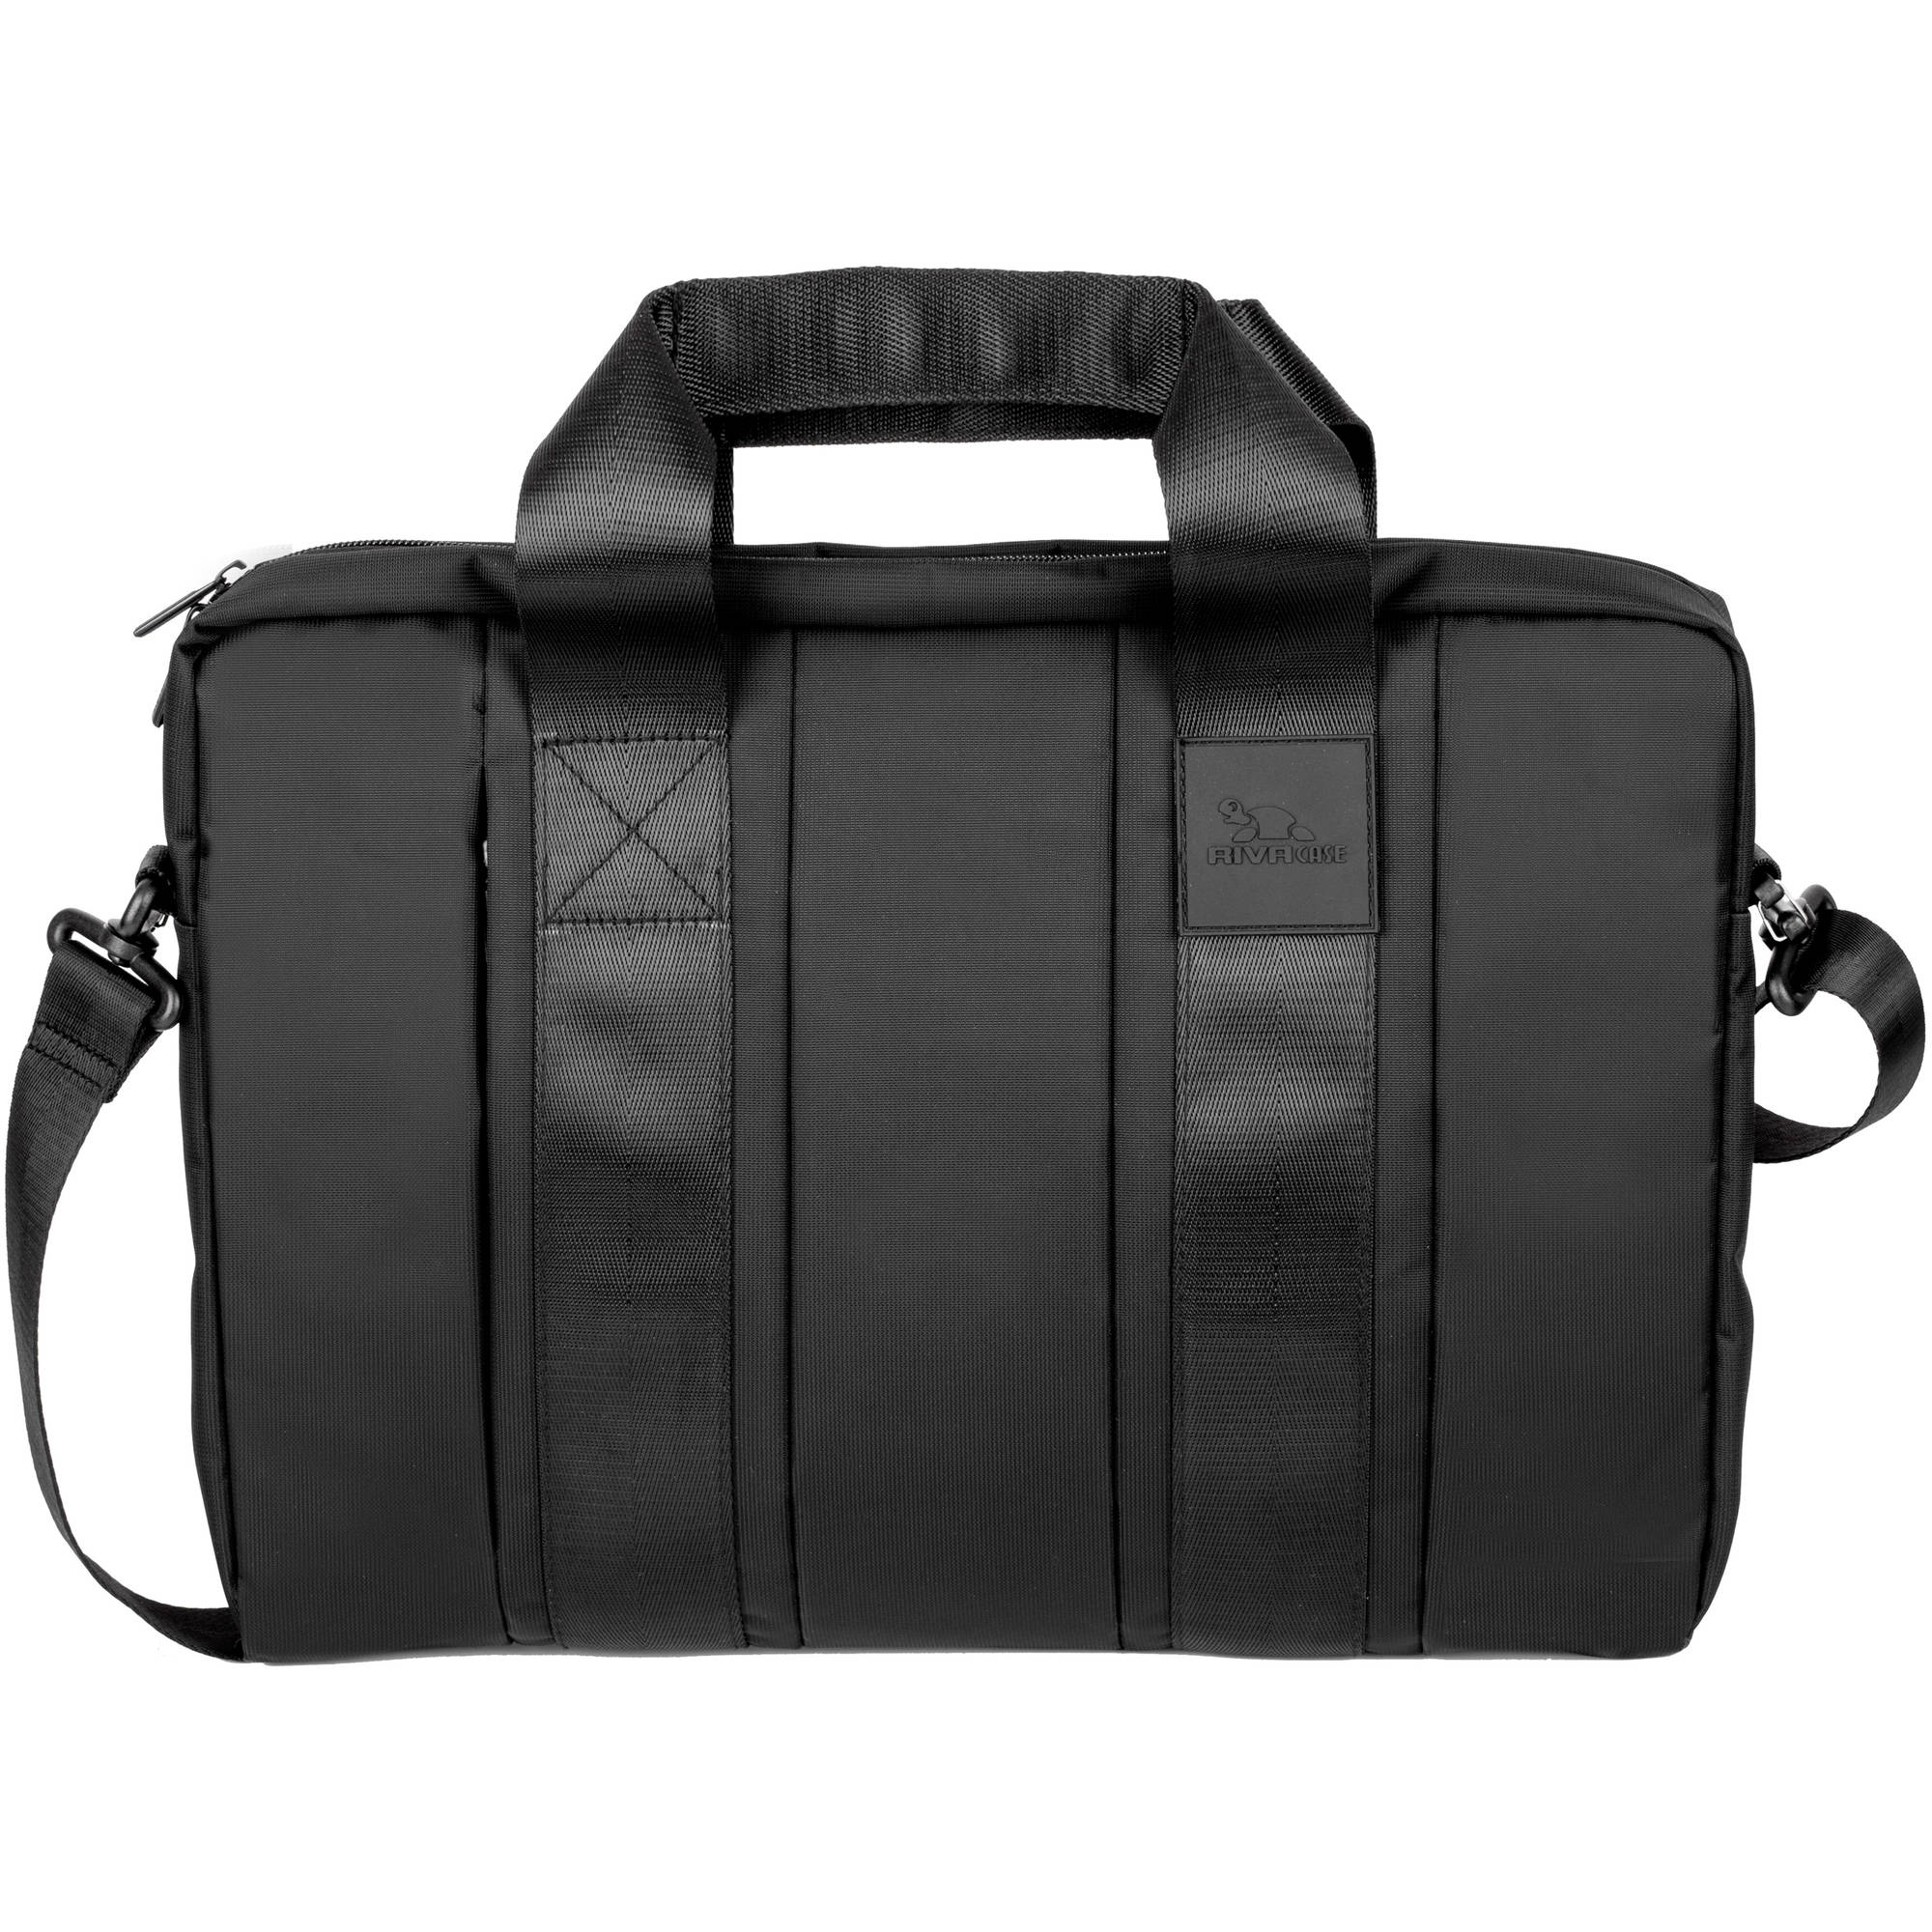 "RIVACASE 15.6"" Laptop Bag 8830, Black"